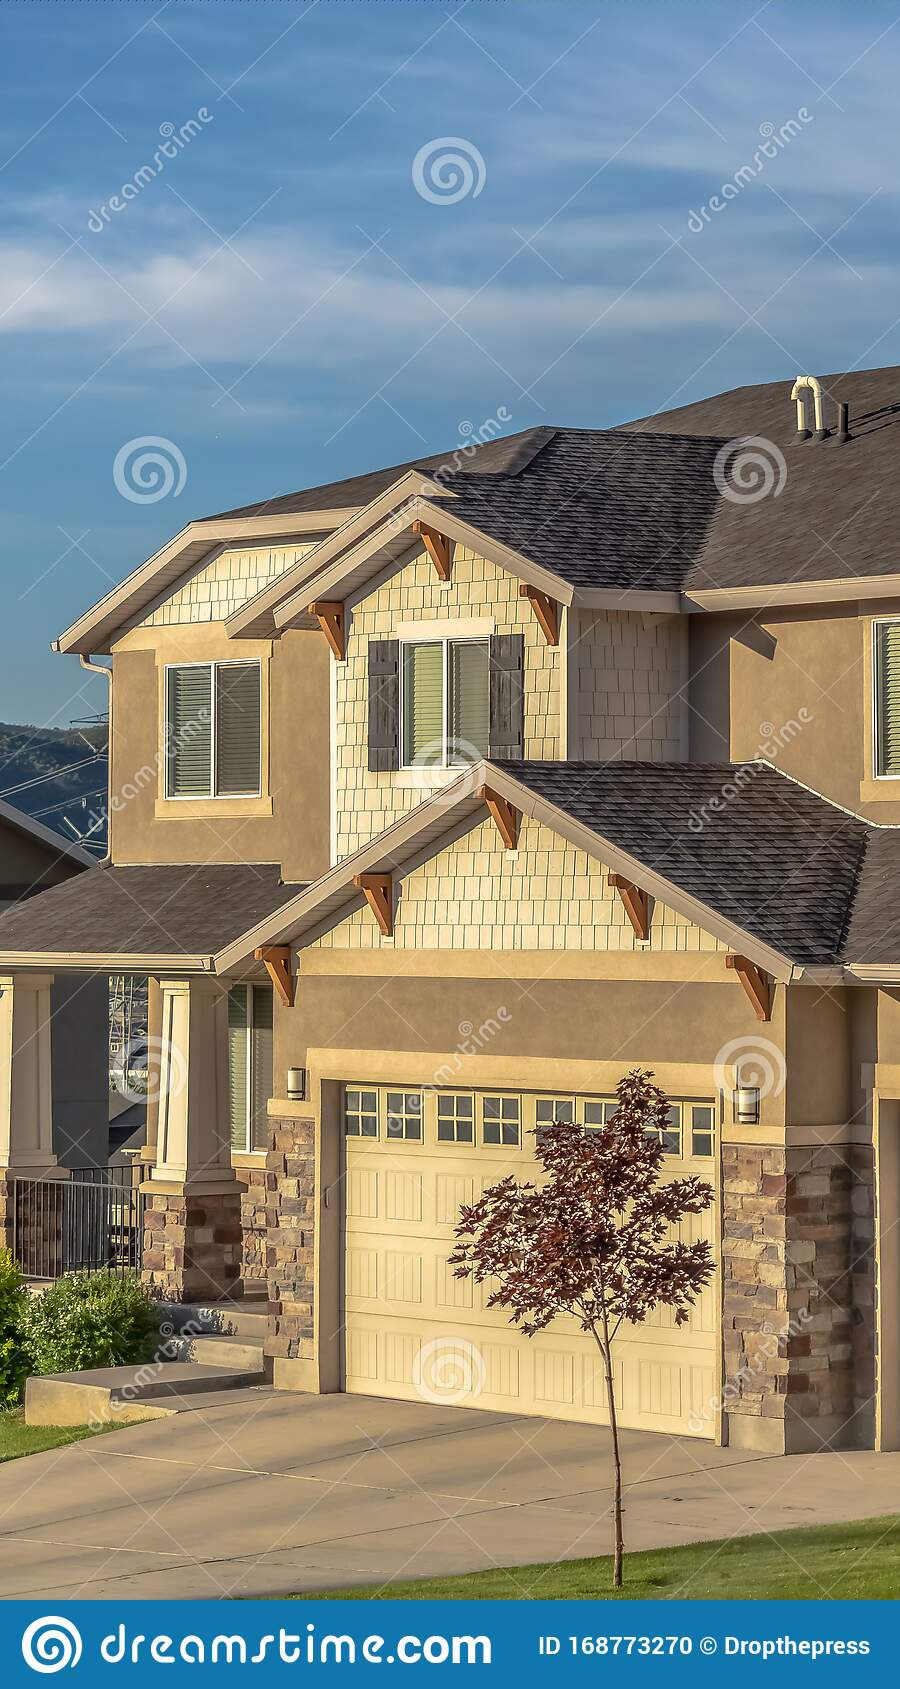 vertical beautiful house exterior concrete stone brick wall against blue sky gable dormer roofs garage dors driveway